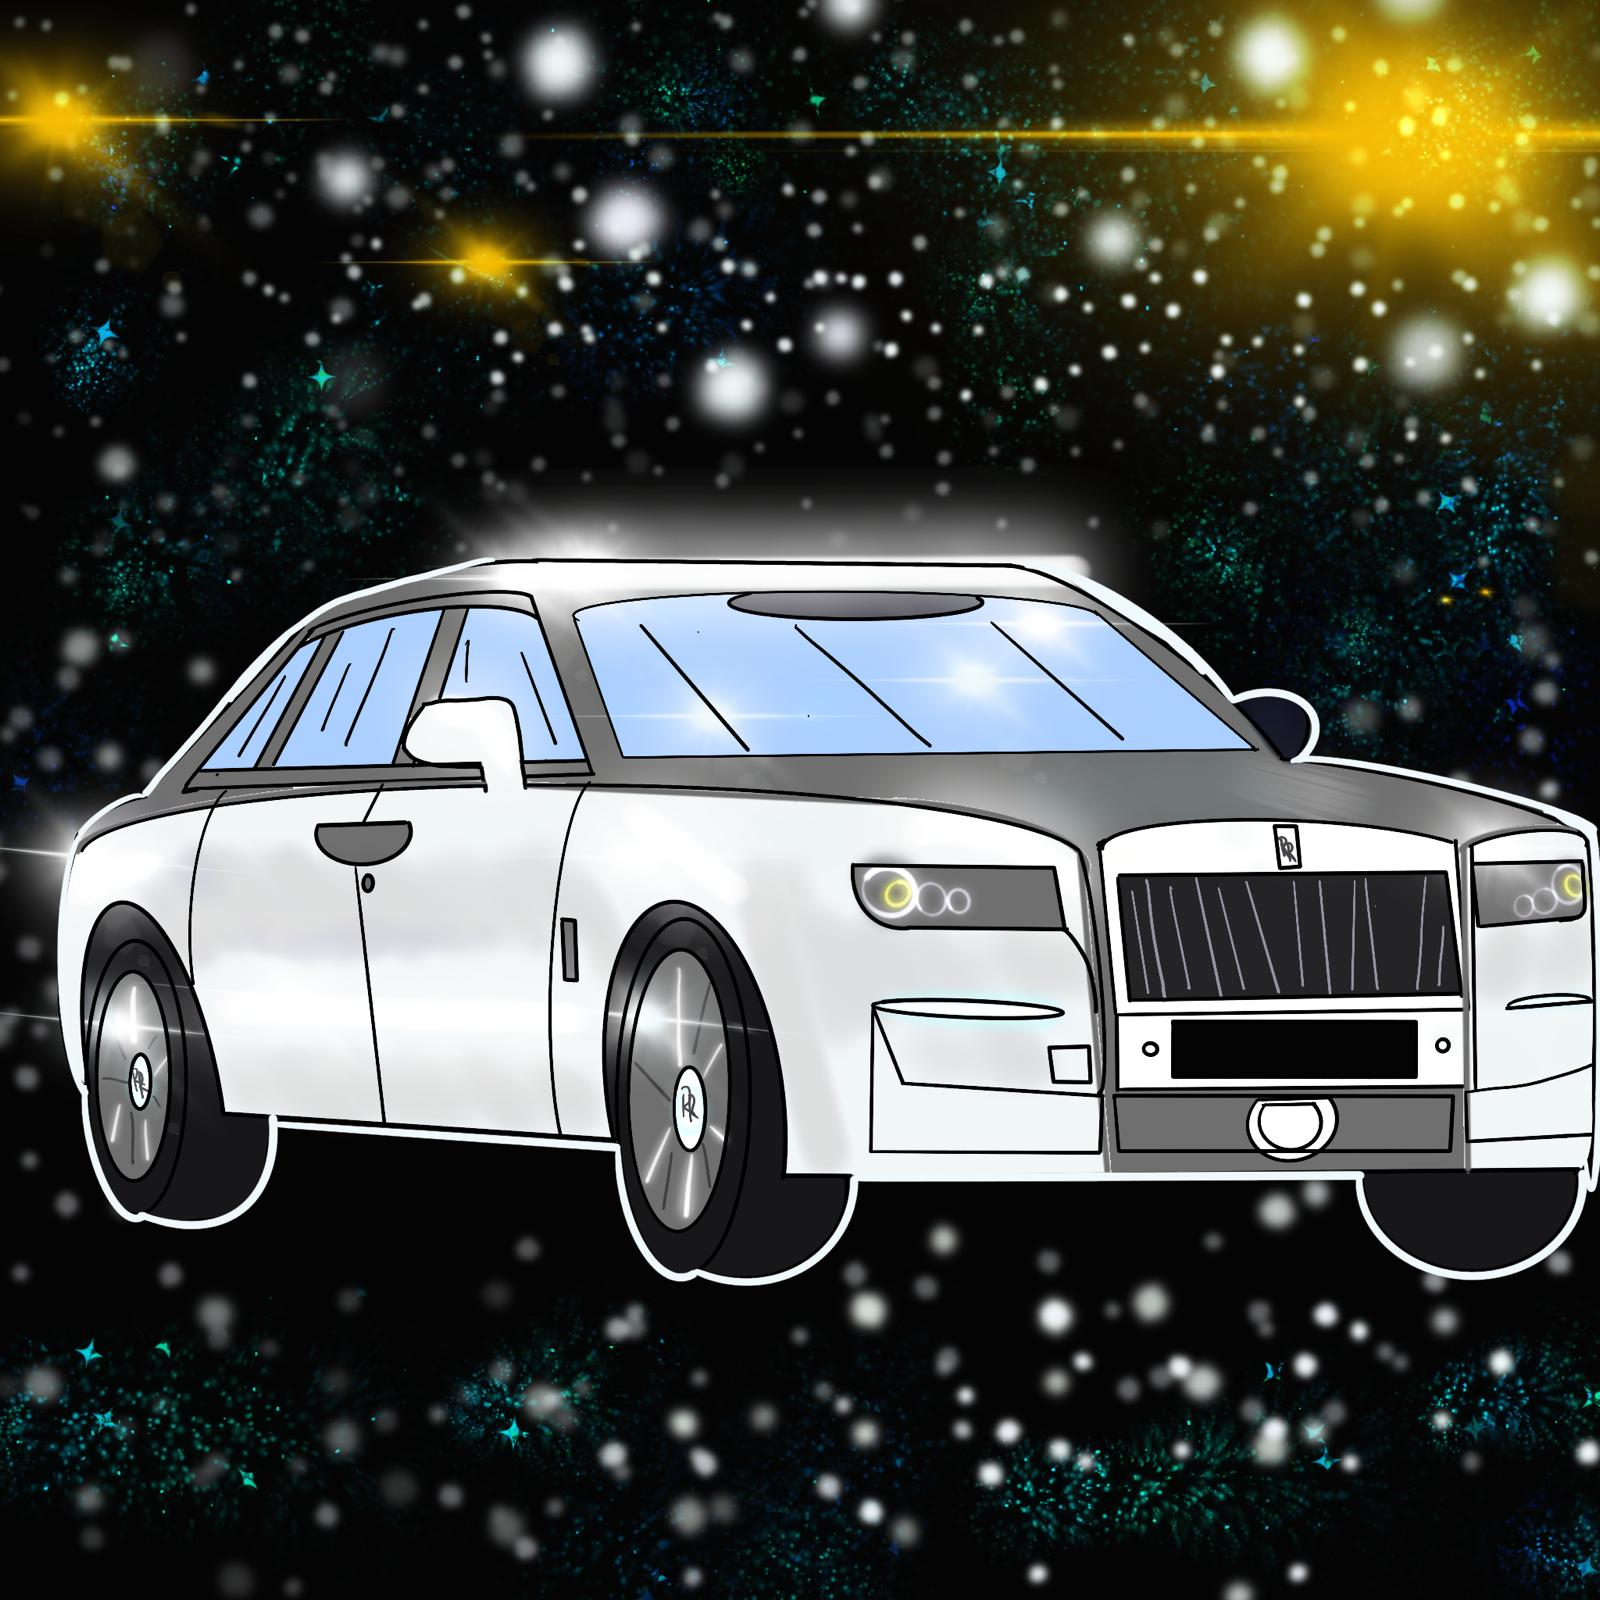 Nicole Salazar illustrates new Rolls-Royce for 360 MAGAZINE.